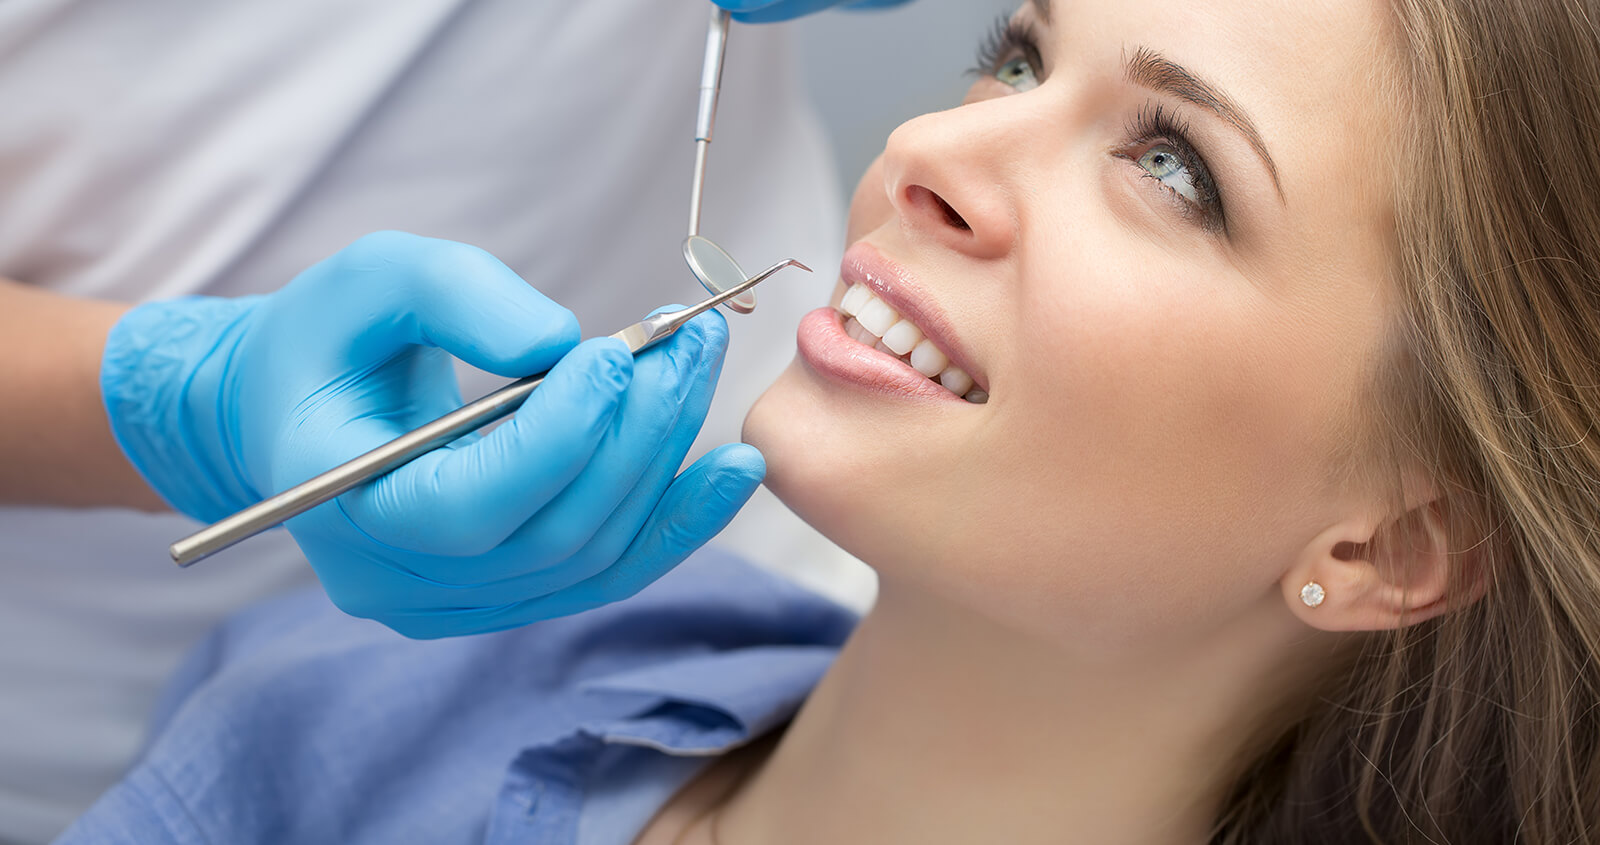 What is the process of whitening teeth in Santa Rosa, CA area dental practice?